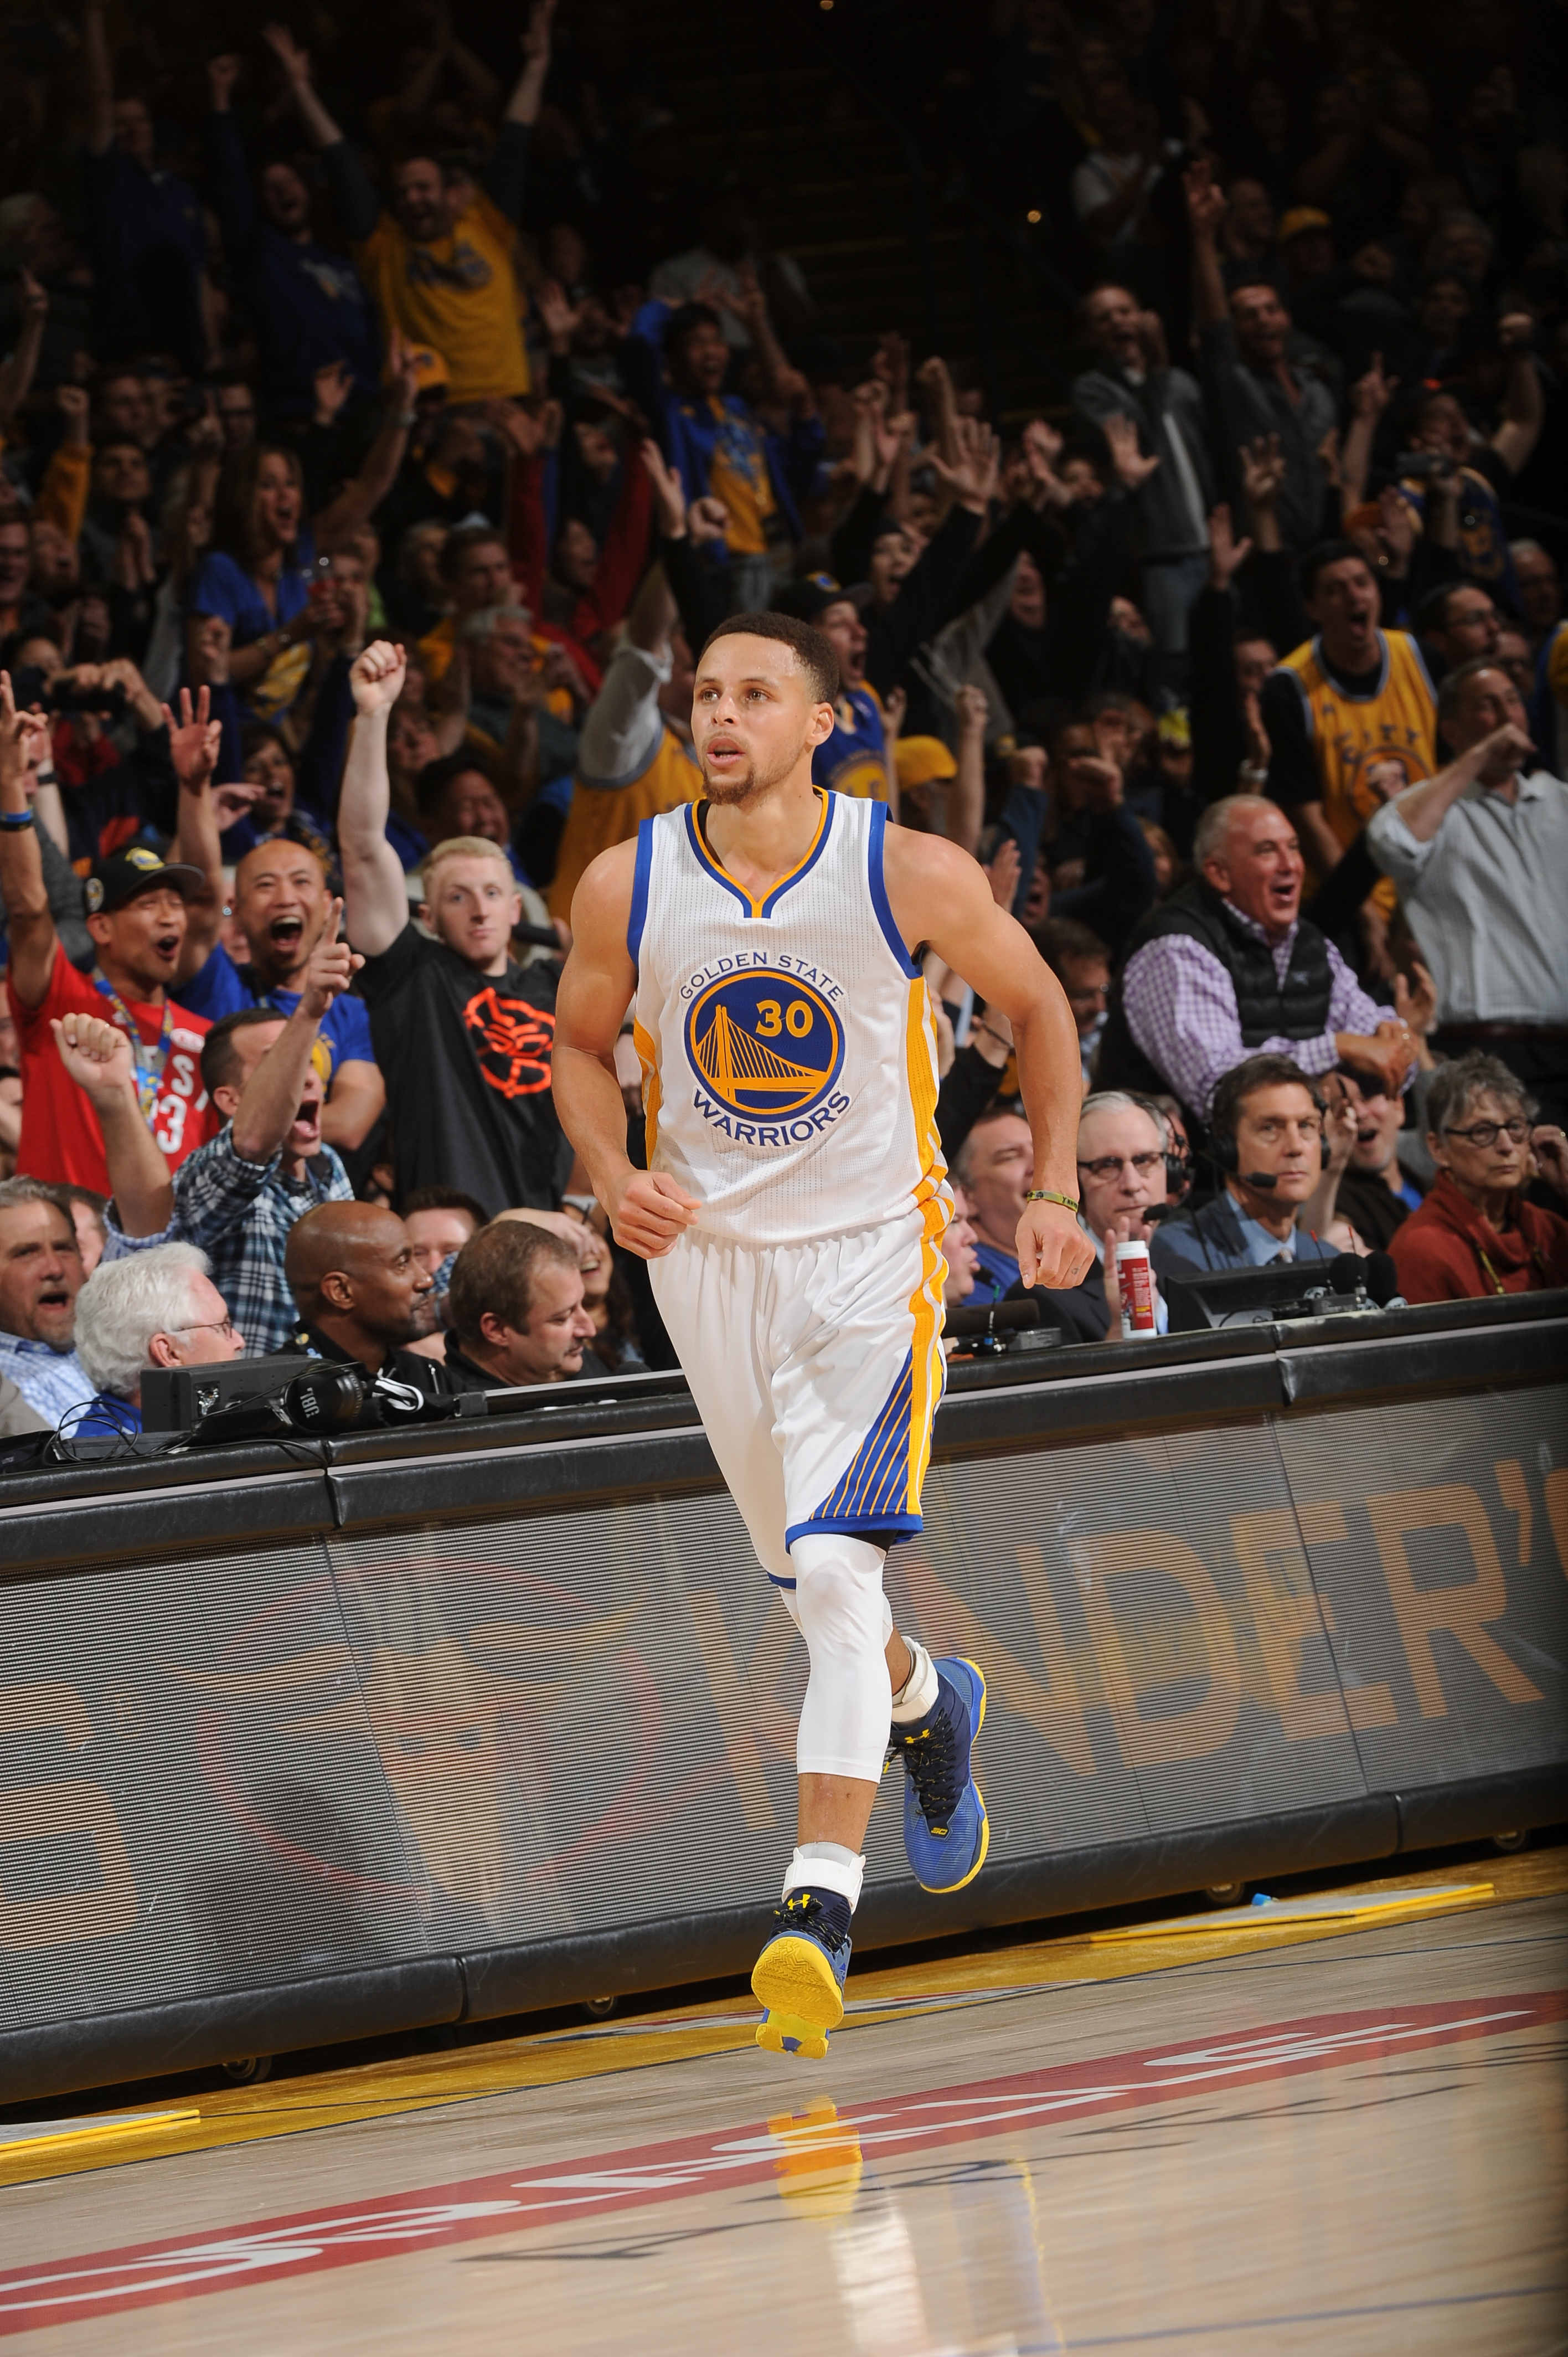 OAKLAND, CA - MARCH 7: Stephen Curry #30 of the Golden State Warriors runs up court during the game against the Orlando Magic on March 7, 2016 at ORACLE Arena in Oakland, California. (Photo by Noah Graham/NBAE via Getty Images)